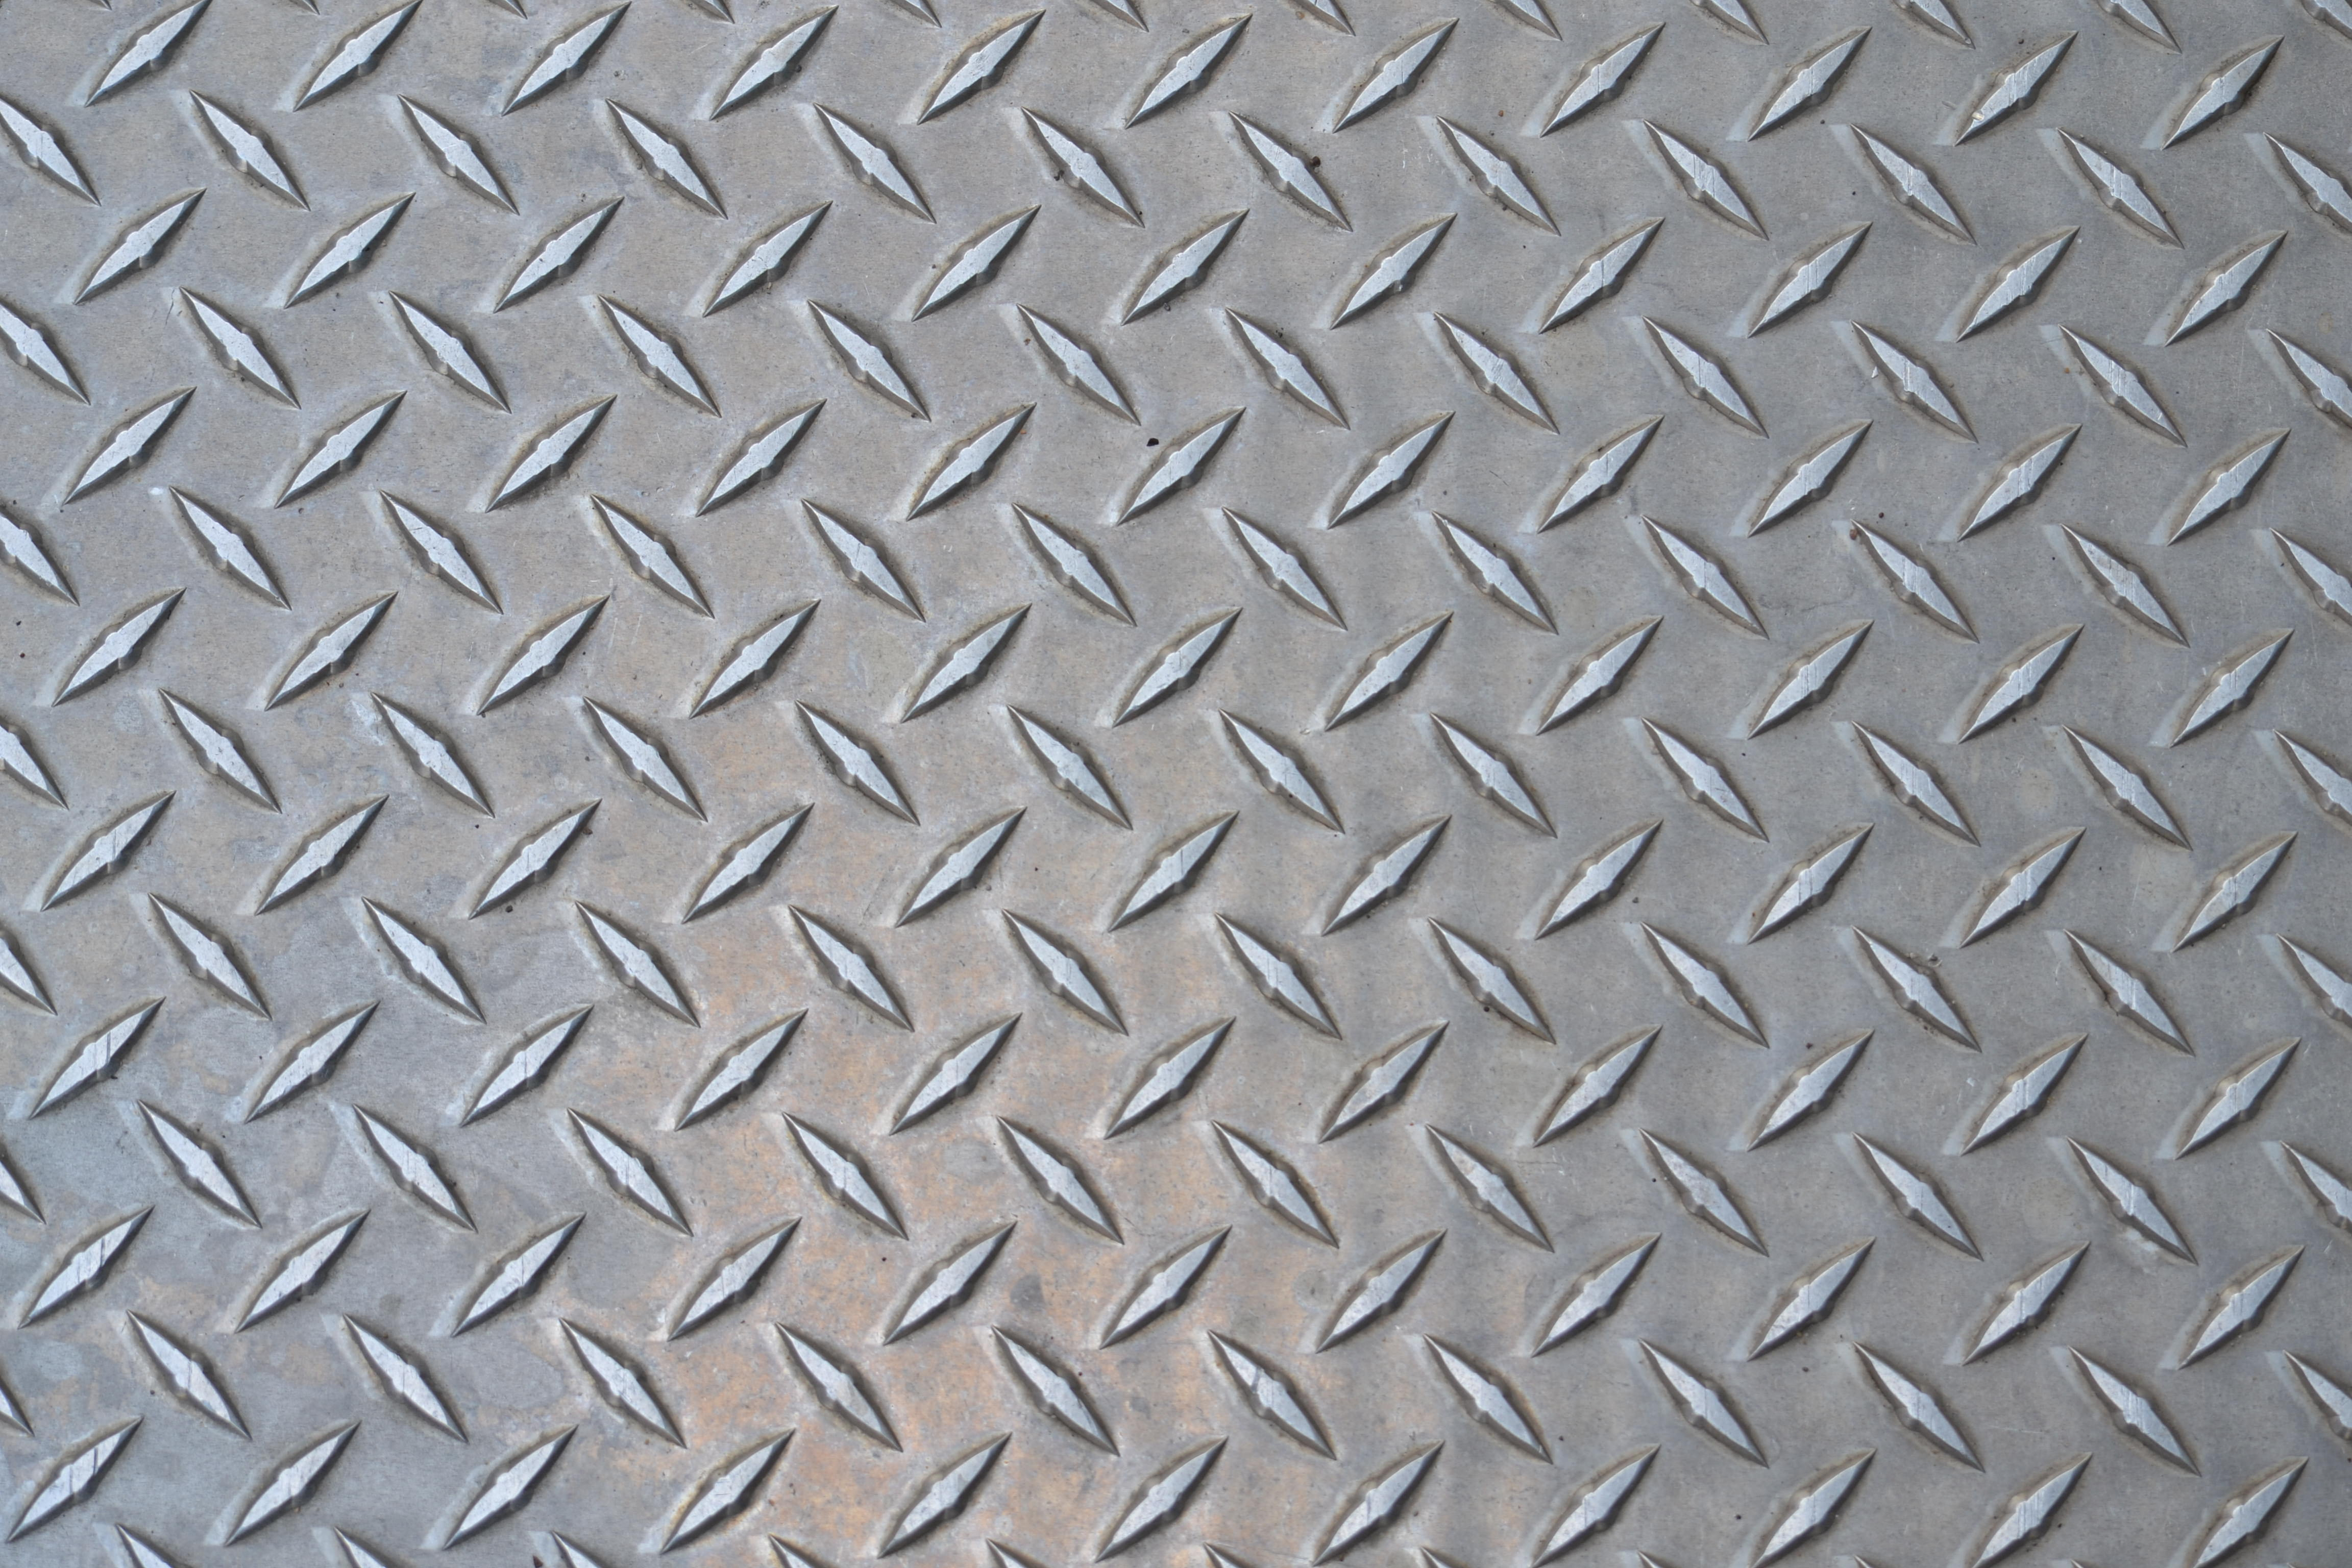 Diamond Plate Textures Background